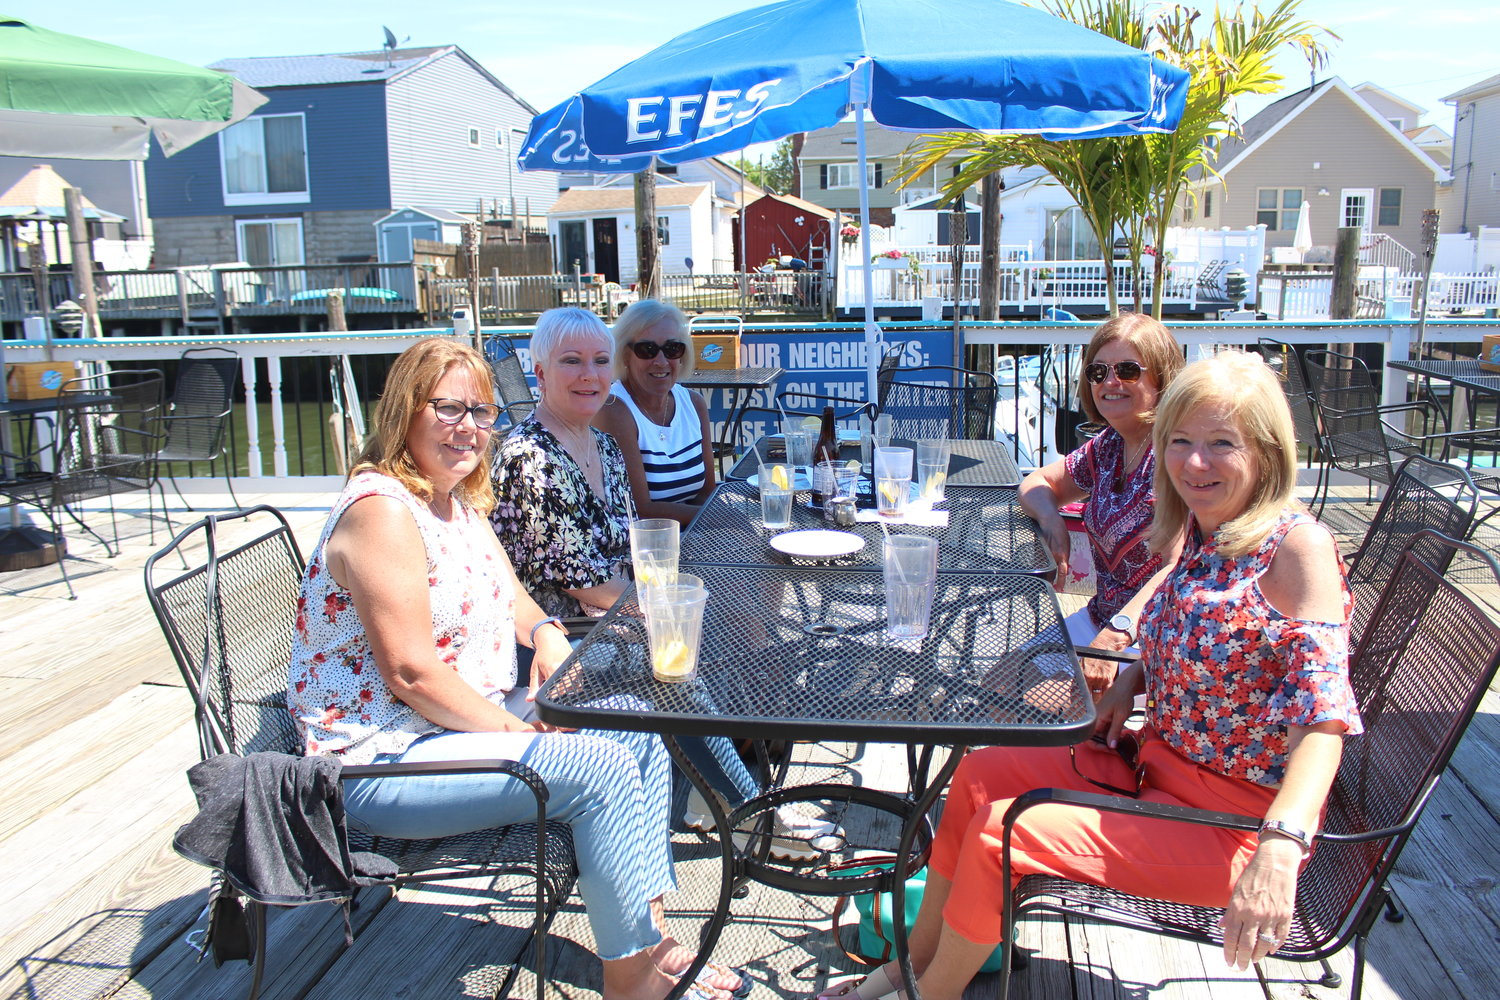 Maura Kerley, clockwise from front right, Kathy Kerley, Kathy Brucia, Mary Ellen Seifert and Cathy Fries dined outdoors at Sonny's Canal House on June 19.